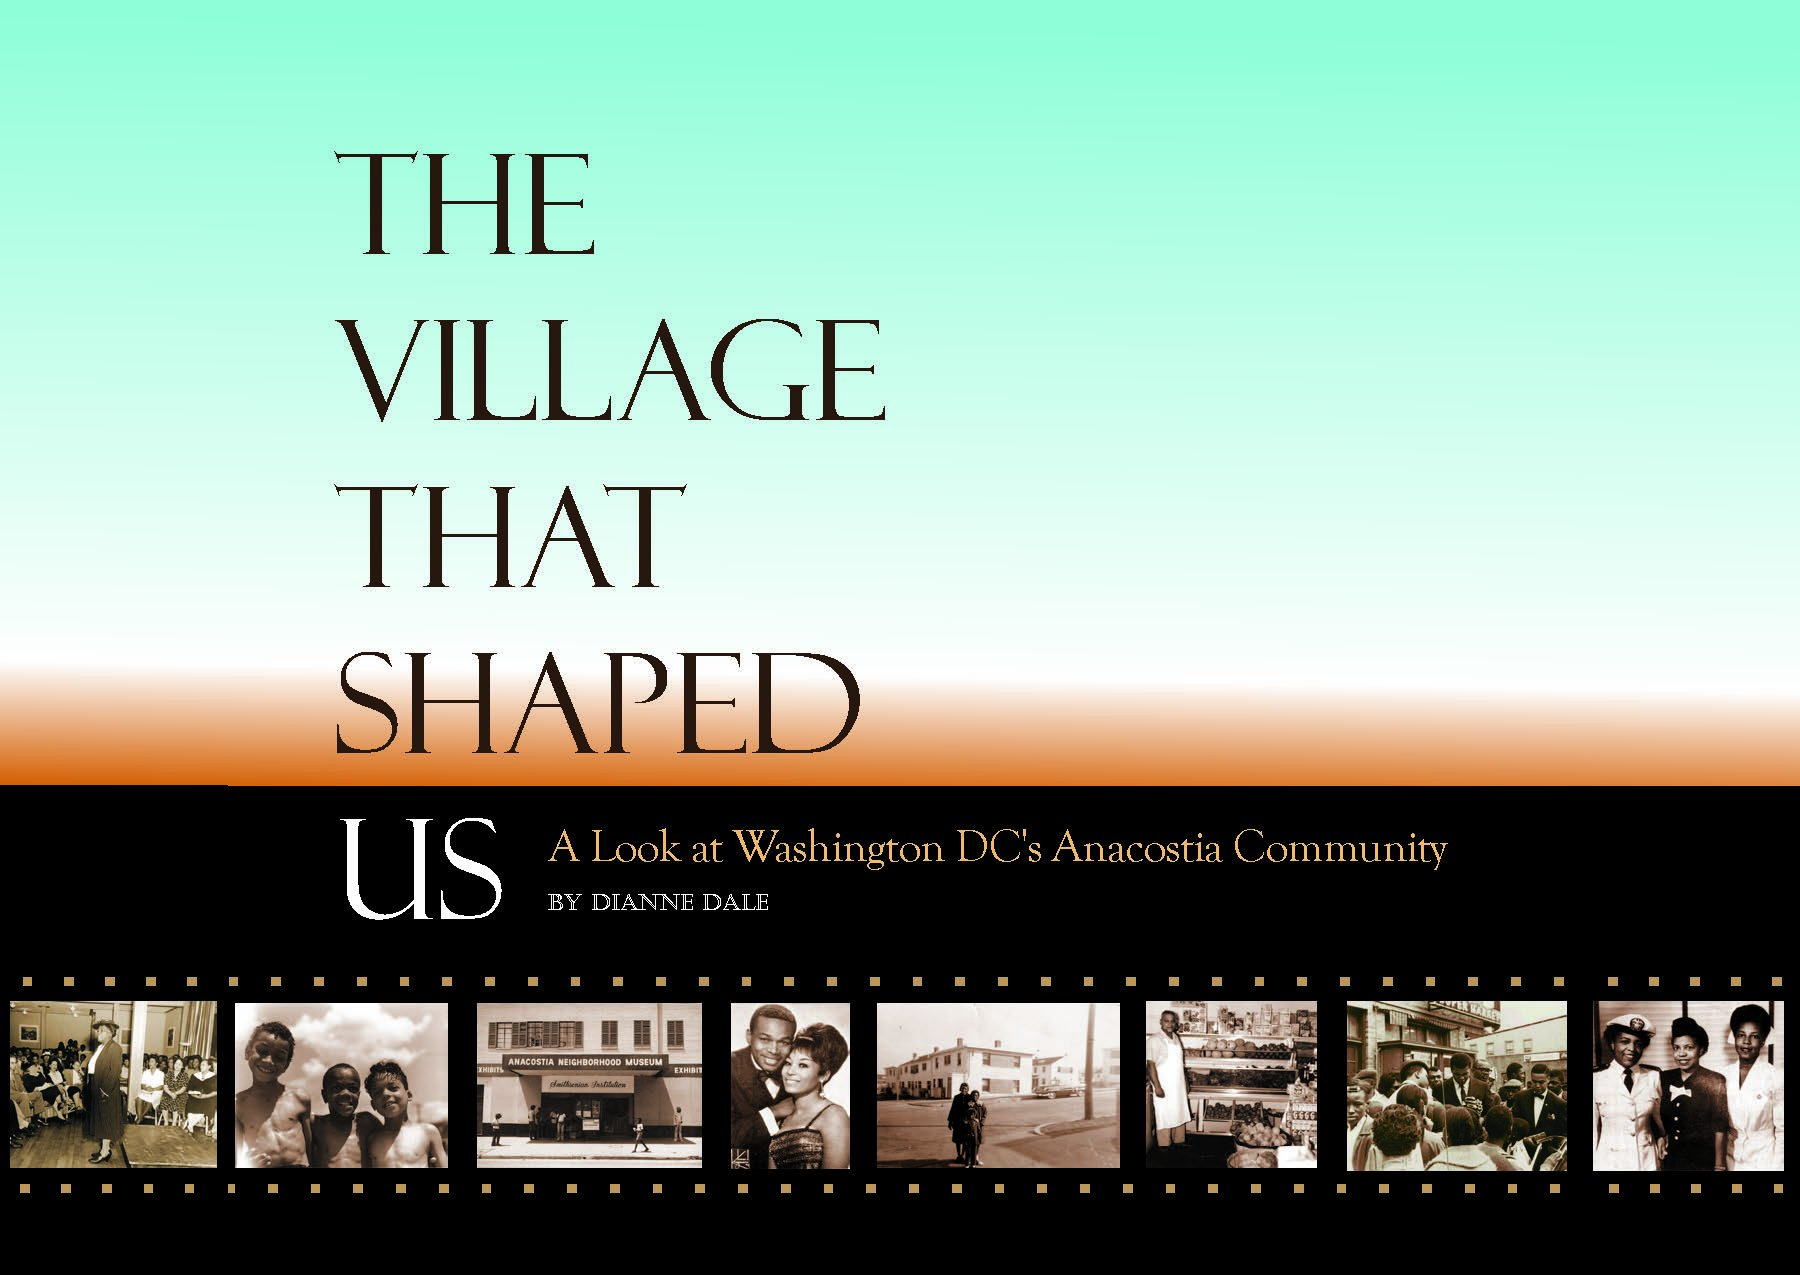 The Village That Shaped Us